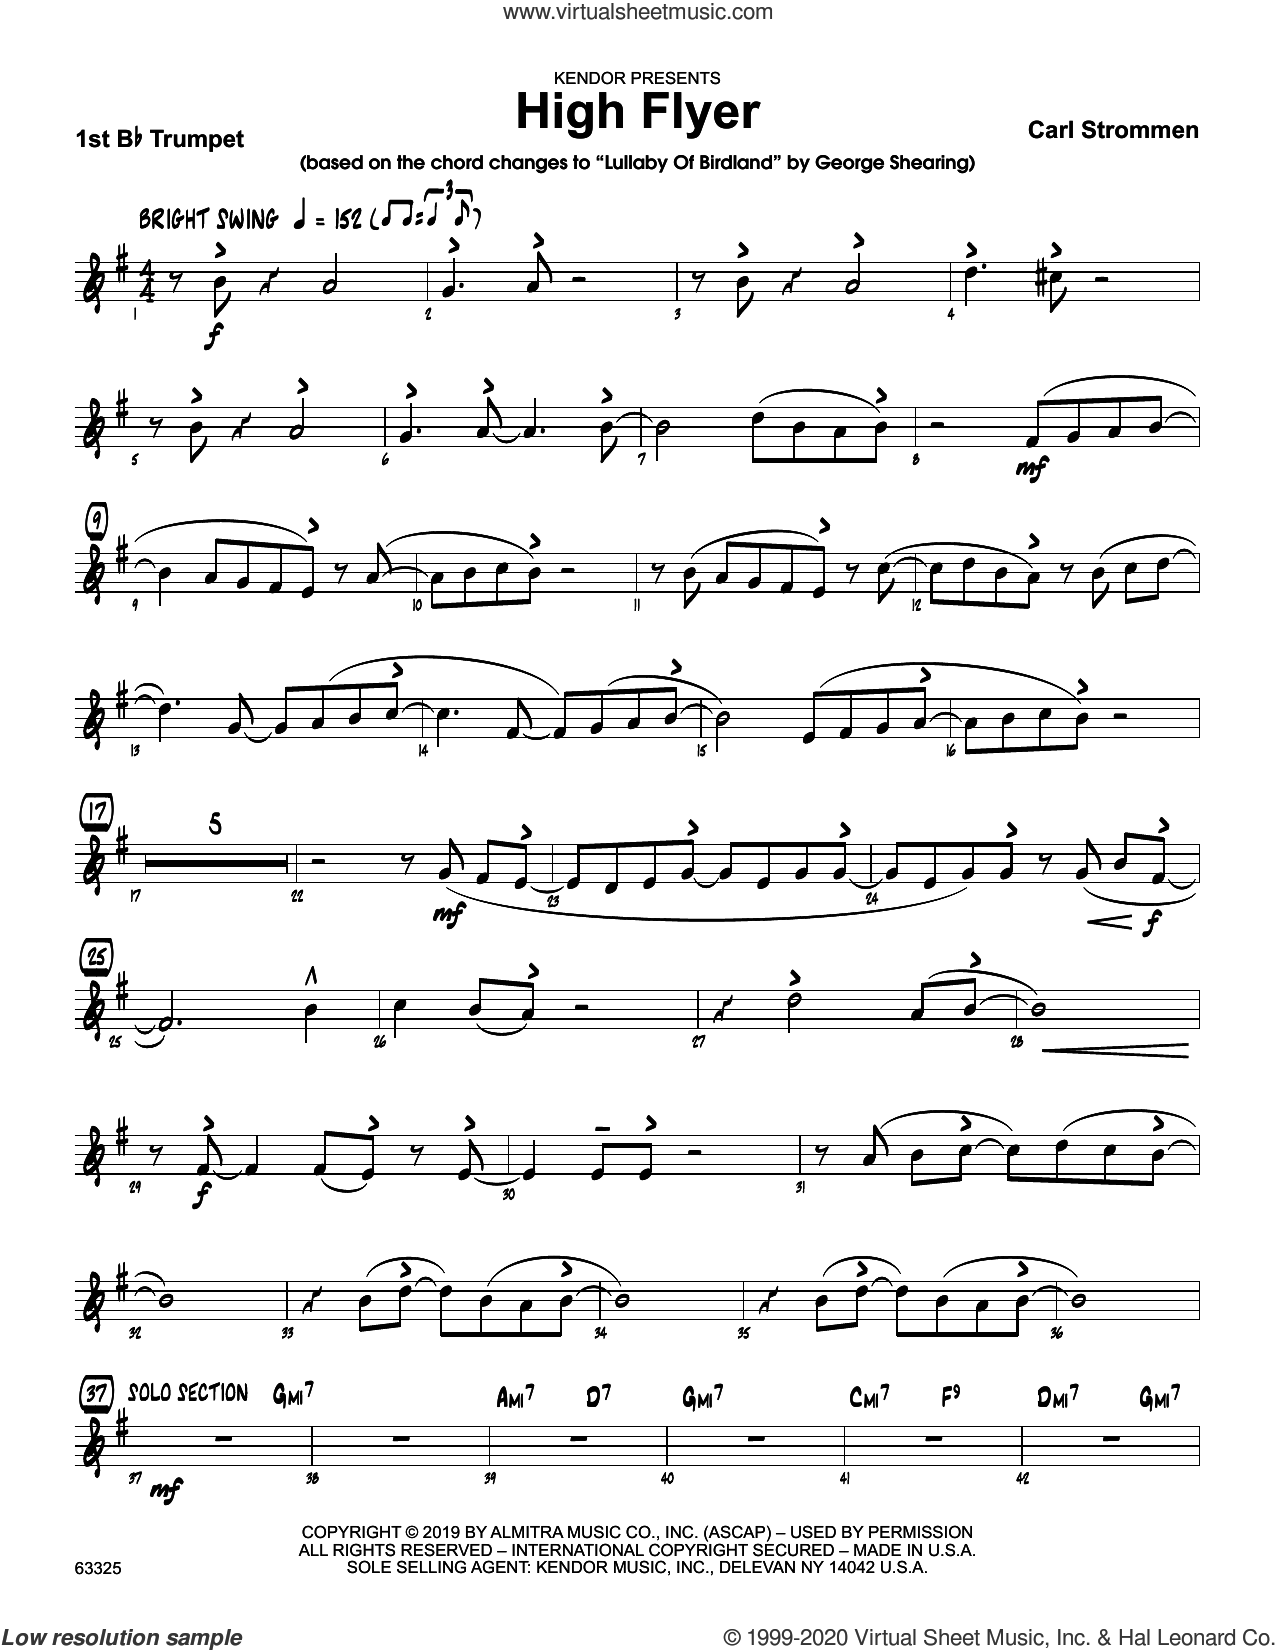 High Flyer sheet music for jazz band (1st Bb trumpet) by Carl Strommen, intermediate skill level